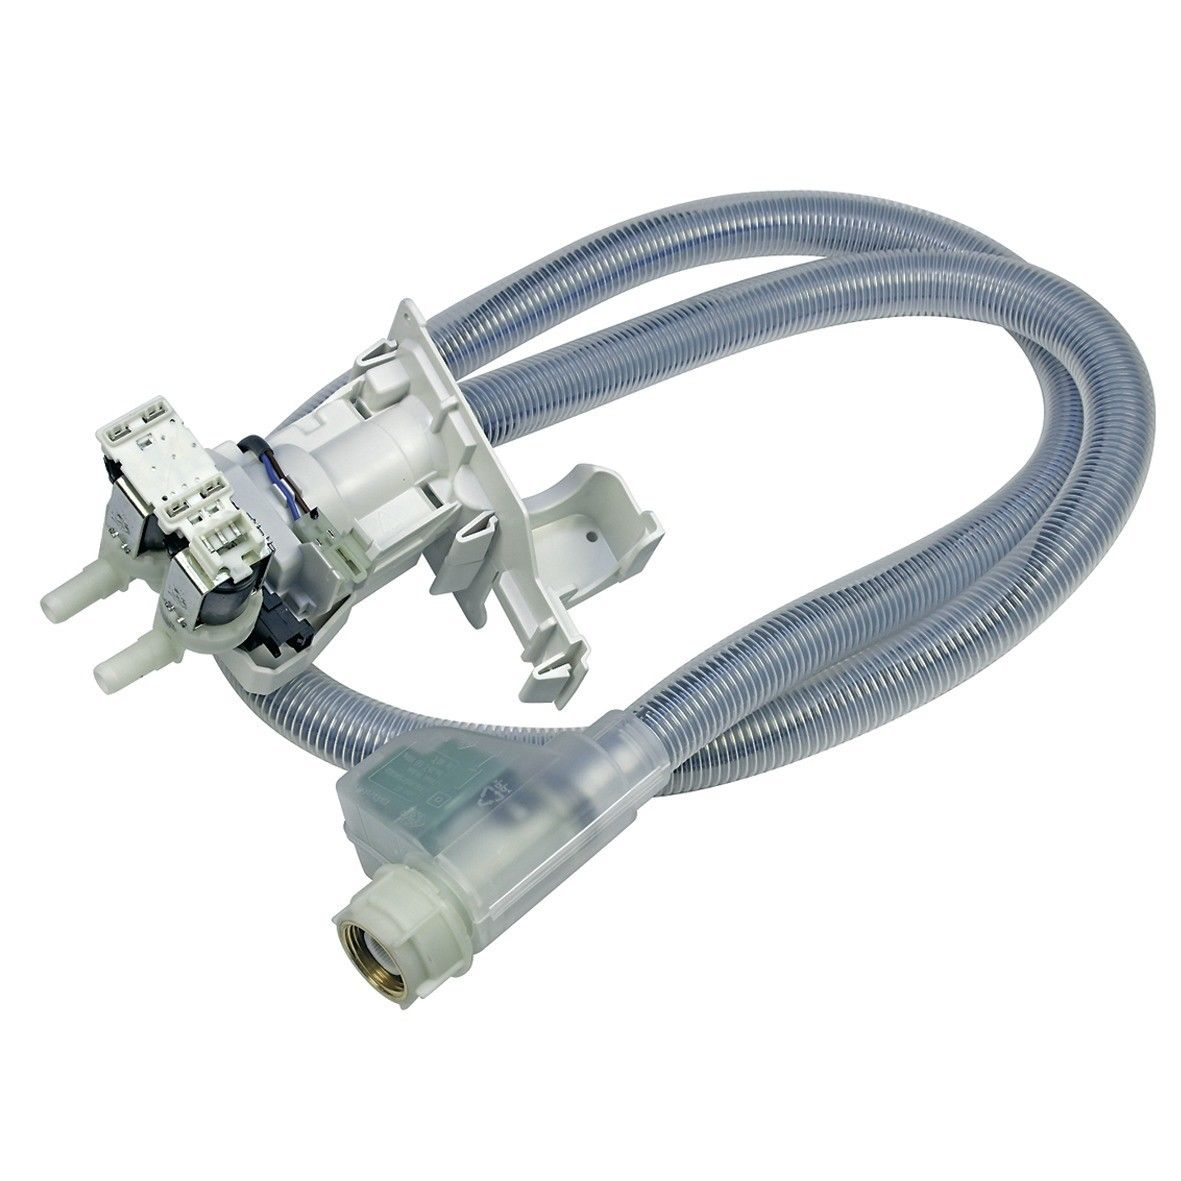 667327 BOSCH NEFF SIEMENS WASHING MACHINE AQUA STOP FILL VALVE H